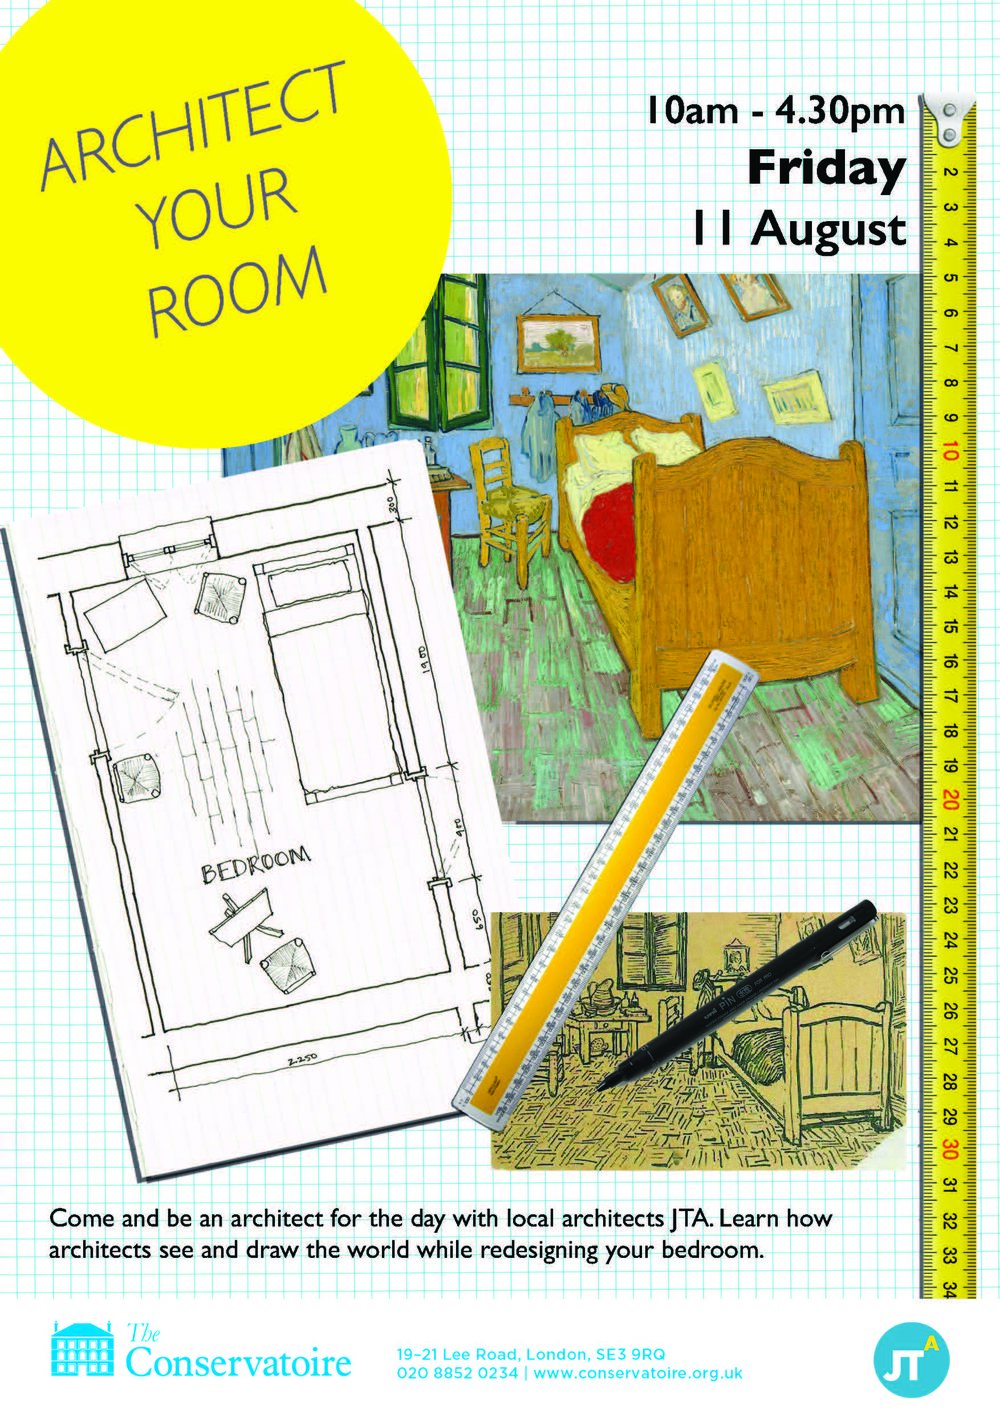 We are holding a workshop for 9 to 14 year olds to come along and try out being an architect! Head over to the Conservatoire in Blackheath on 11th August to learn how to see and draw like an architect while redesigning your bedroom!